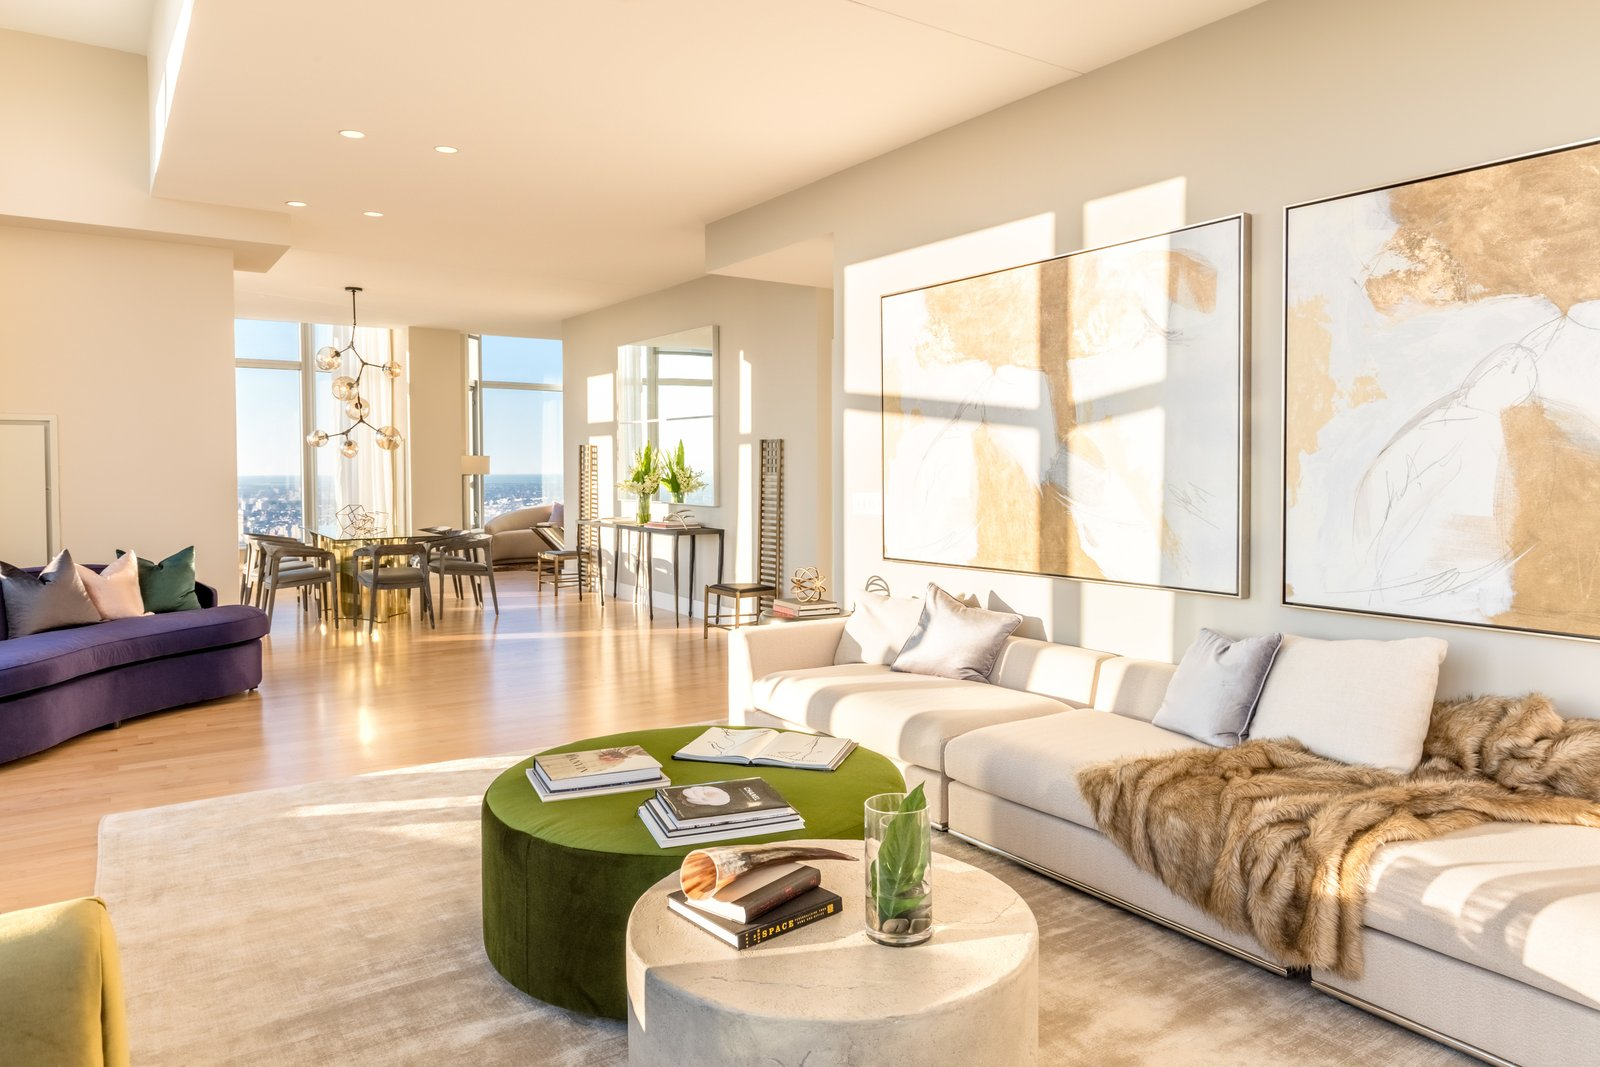 Photo 4 of 9 in Tour This Frank Gehry-Designed Penthouse in NYC That's Back on the Market